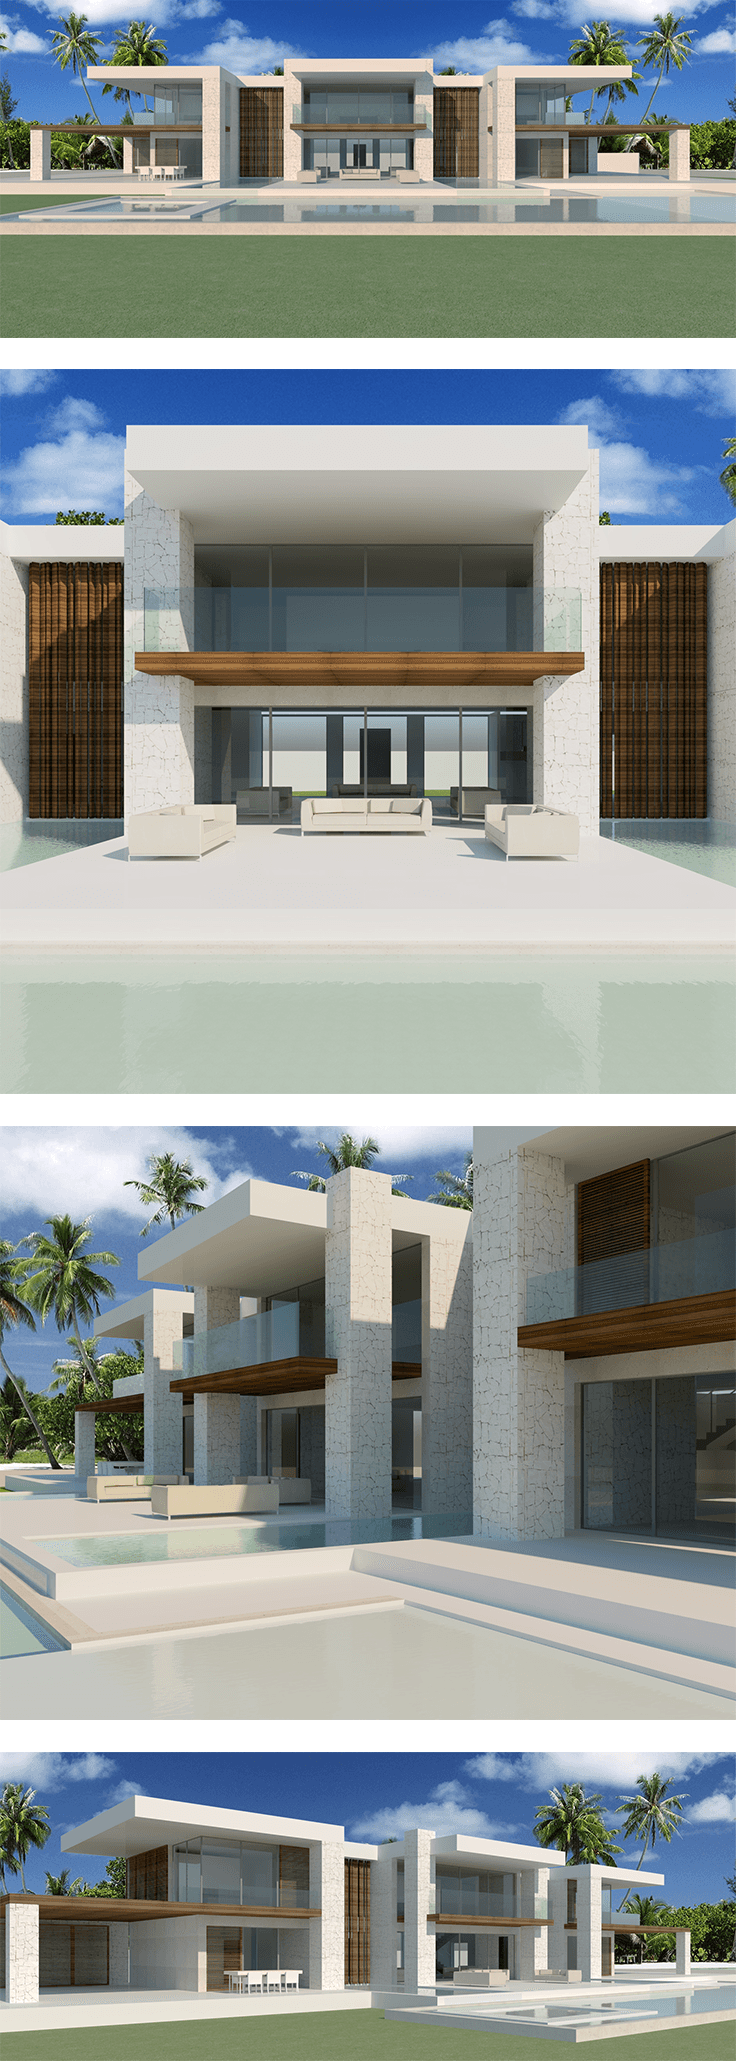 Trilogy House, #design by #Modern #Villas for a #Union #Island ...